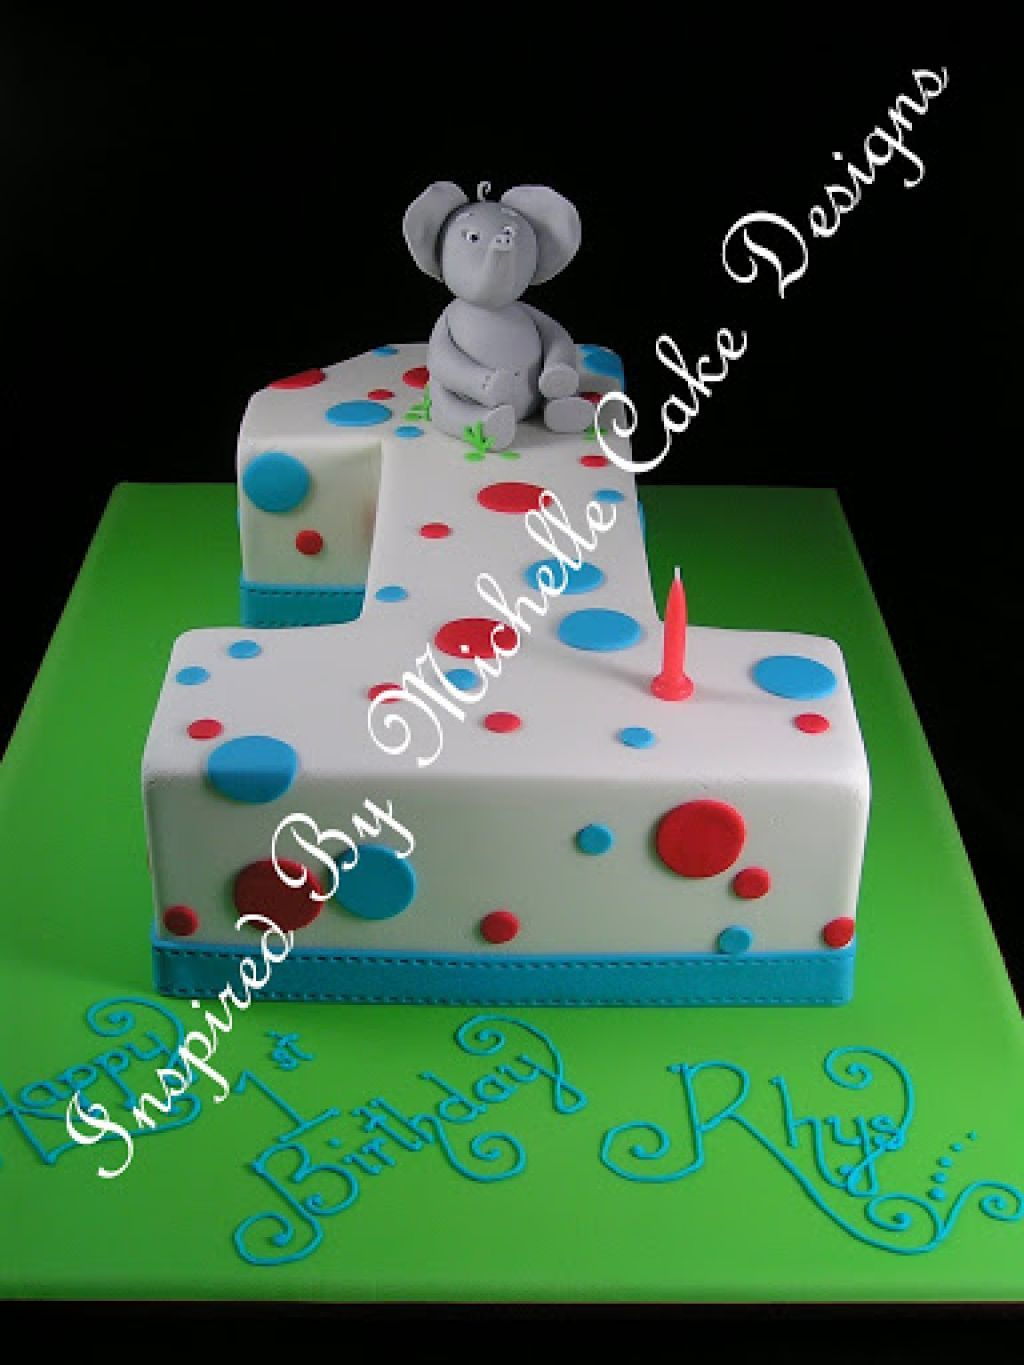 Phenomenal Sheet Birthday Cake For 1 Year Old Boy Google Search With Funny Birthday Cards Online Fluifree Goldxyz